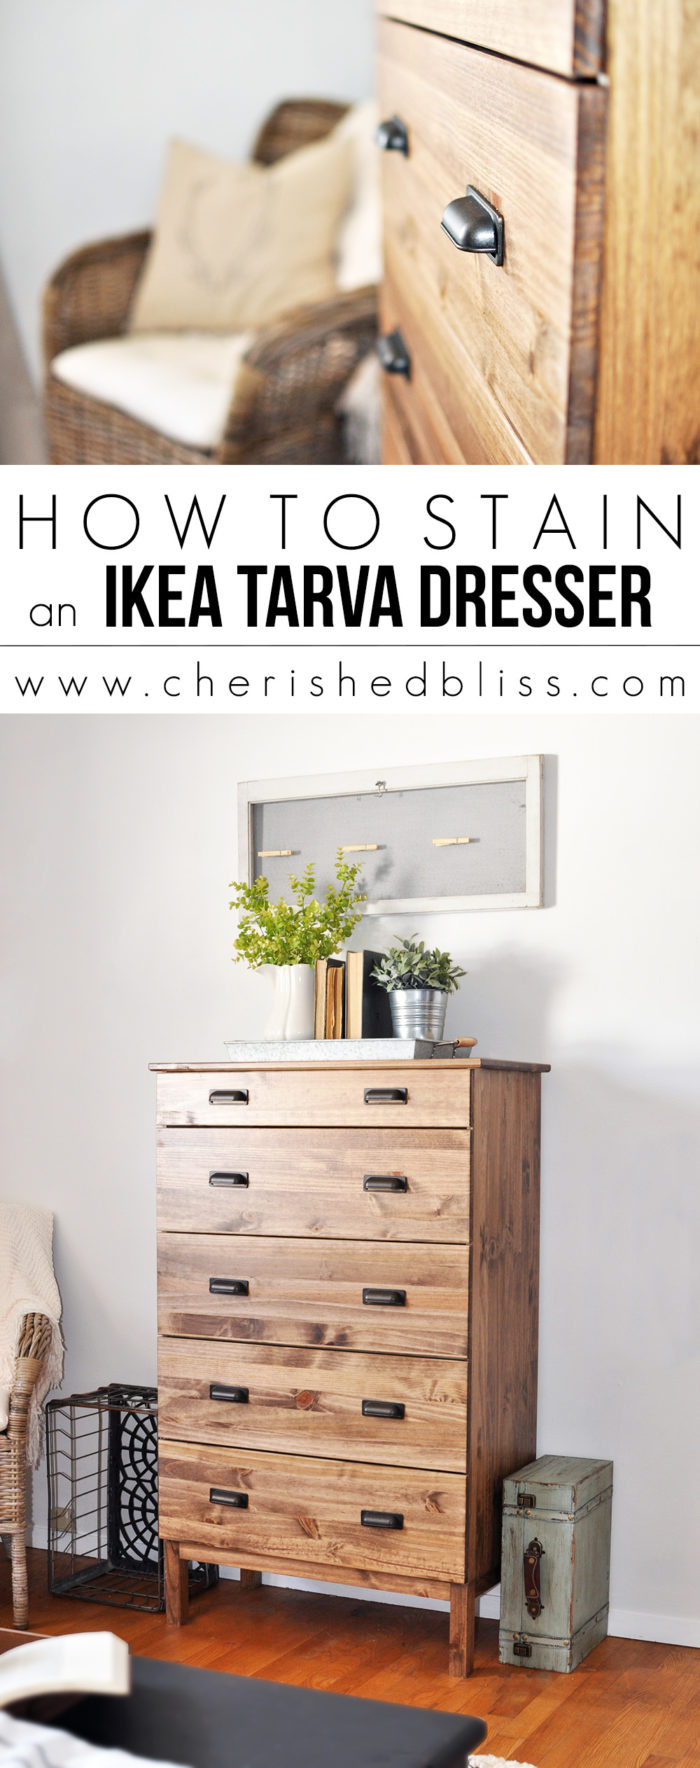 Tarva Kommode How To Stain An Ikea Tarva Dresser Cherished Bliss